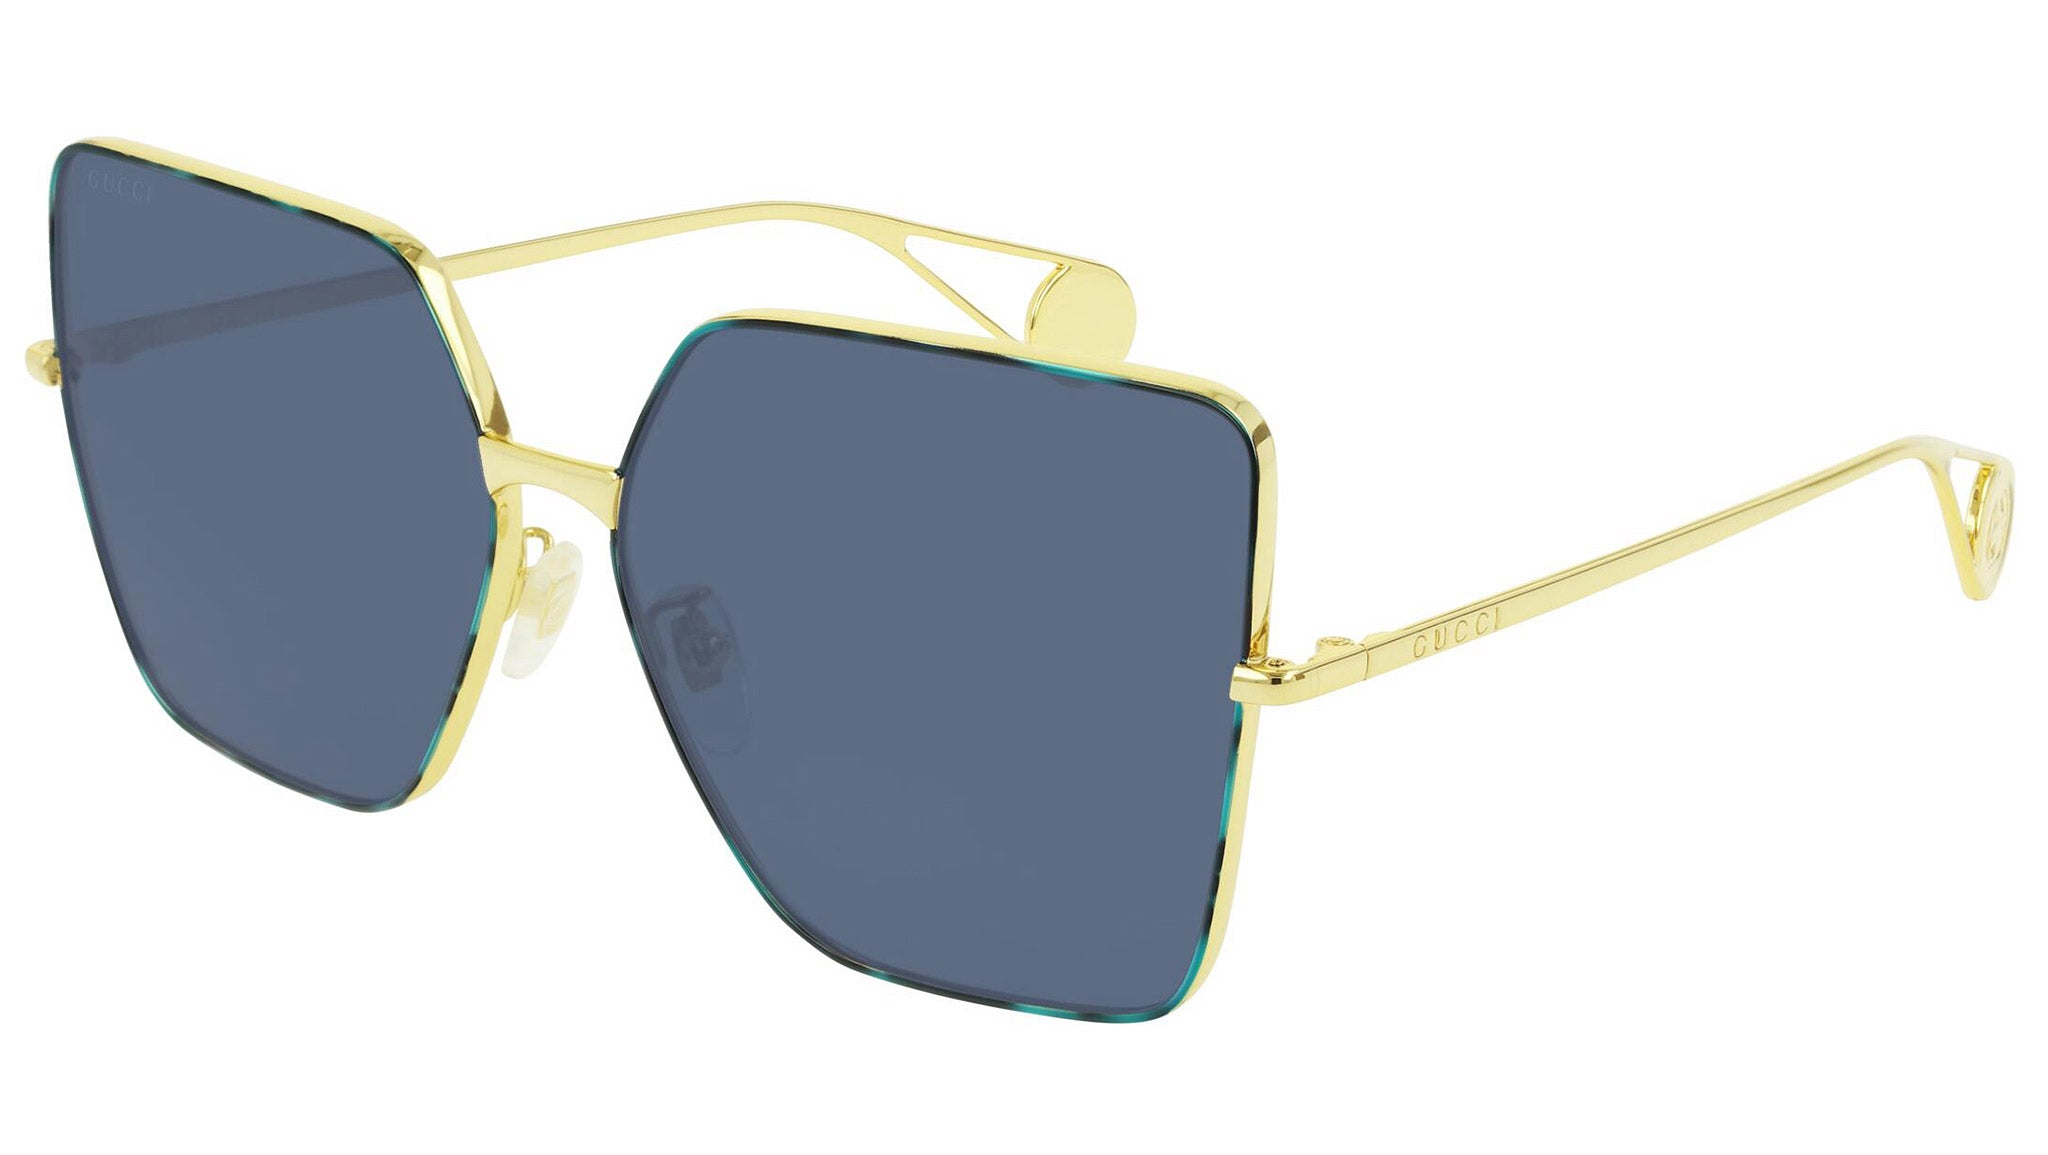 GG0436S havana gold and blue